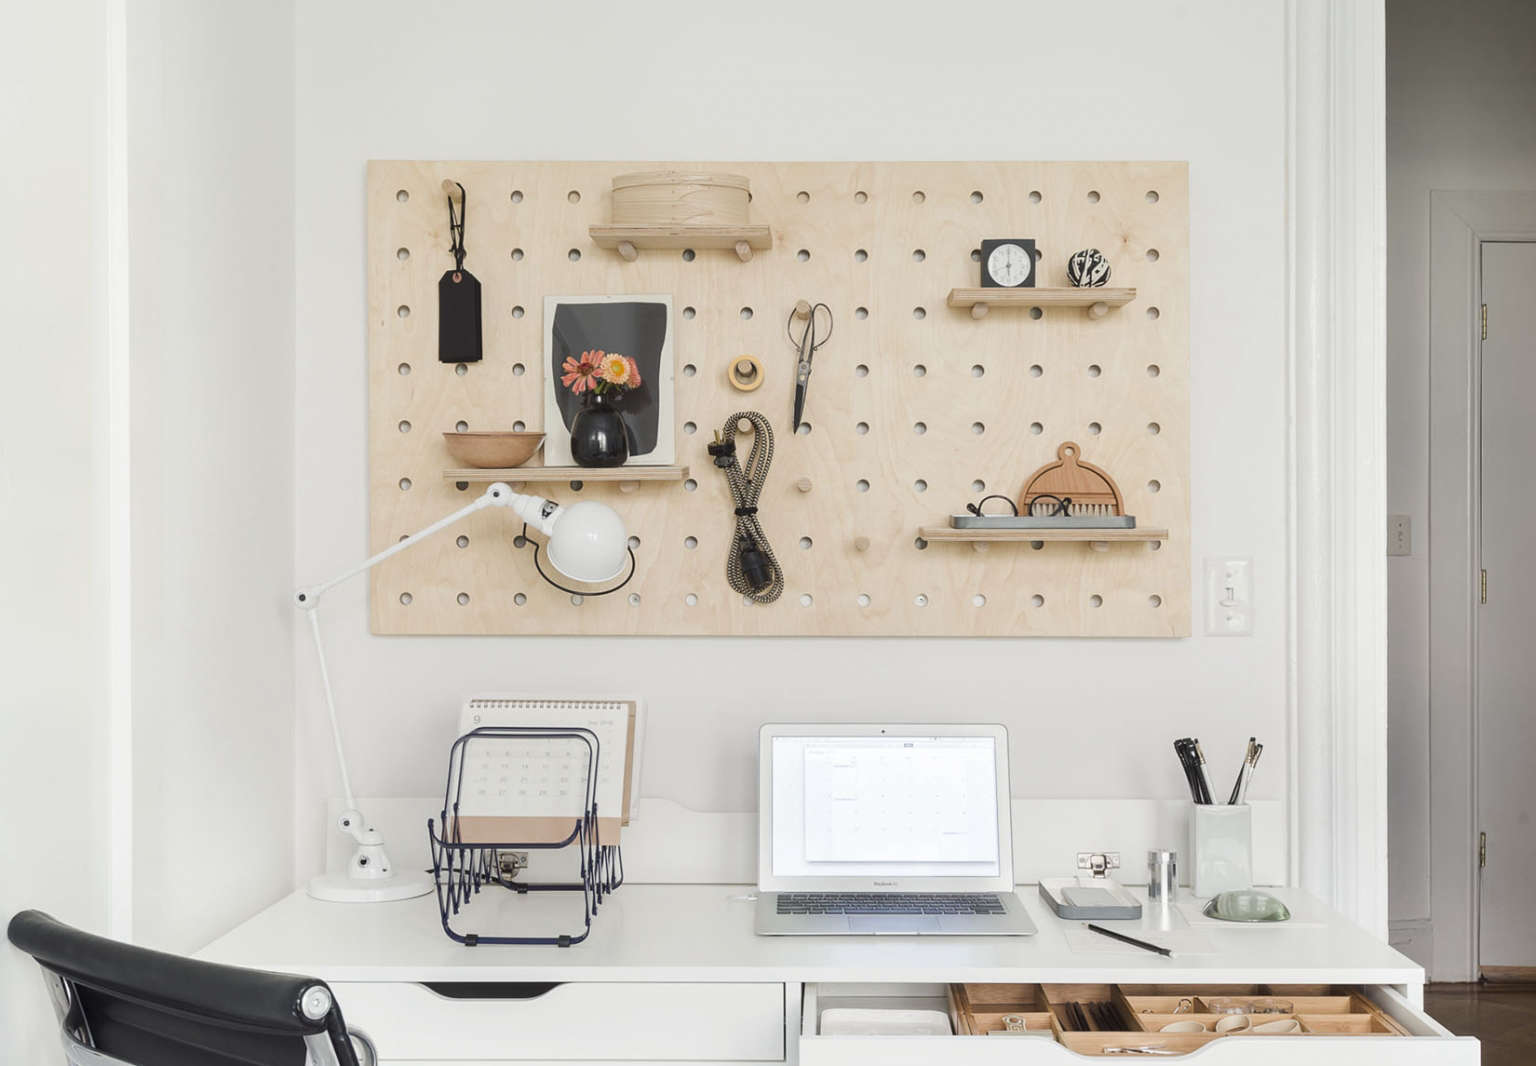 Home Office With Pegboard From The Organized Photo By Matthew Williams